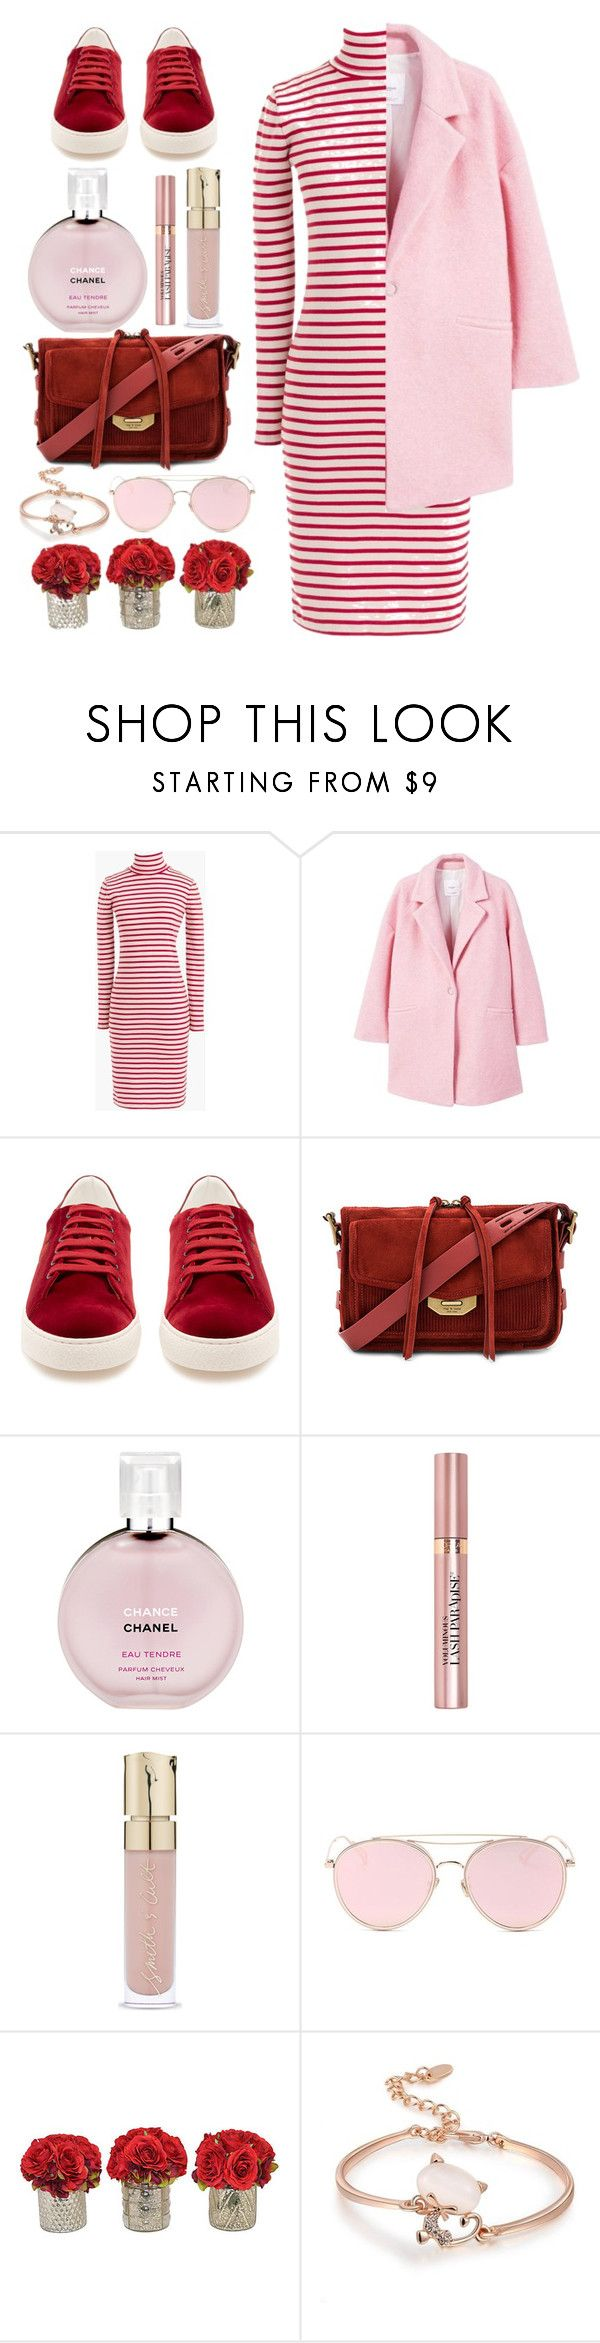 """""""Tuesday's Look"""" by eversmile ❤ liked on Polyvore featuring J.Crew, MANGO, Anya Hindmarch, rag & bone, Chanel, L'Oréal Paris, Smith & Cult, LMNT and The French Bee"""